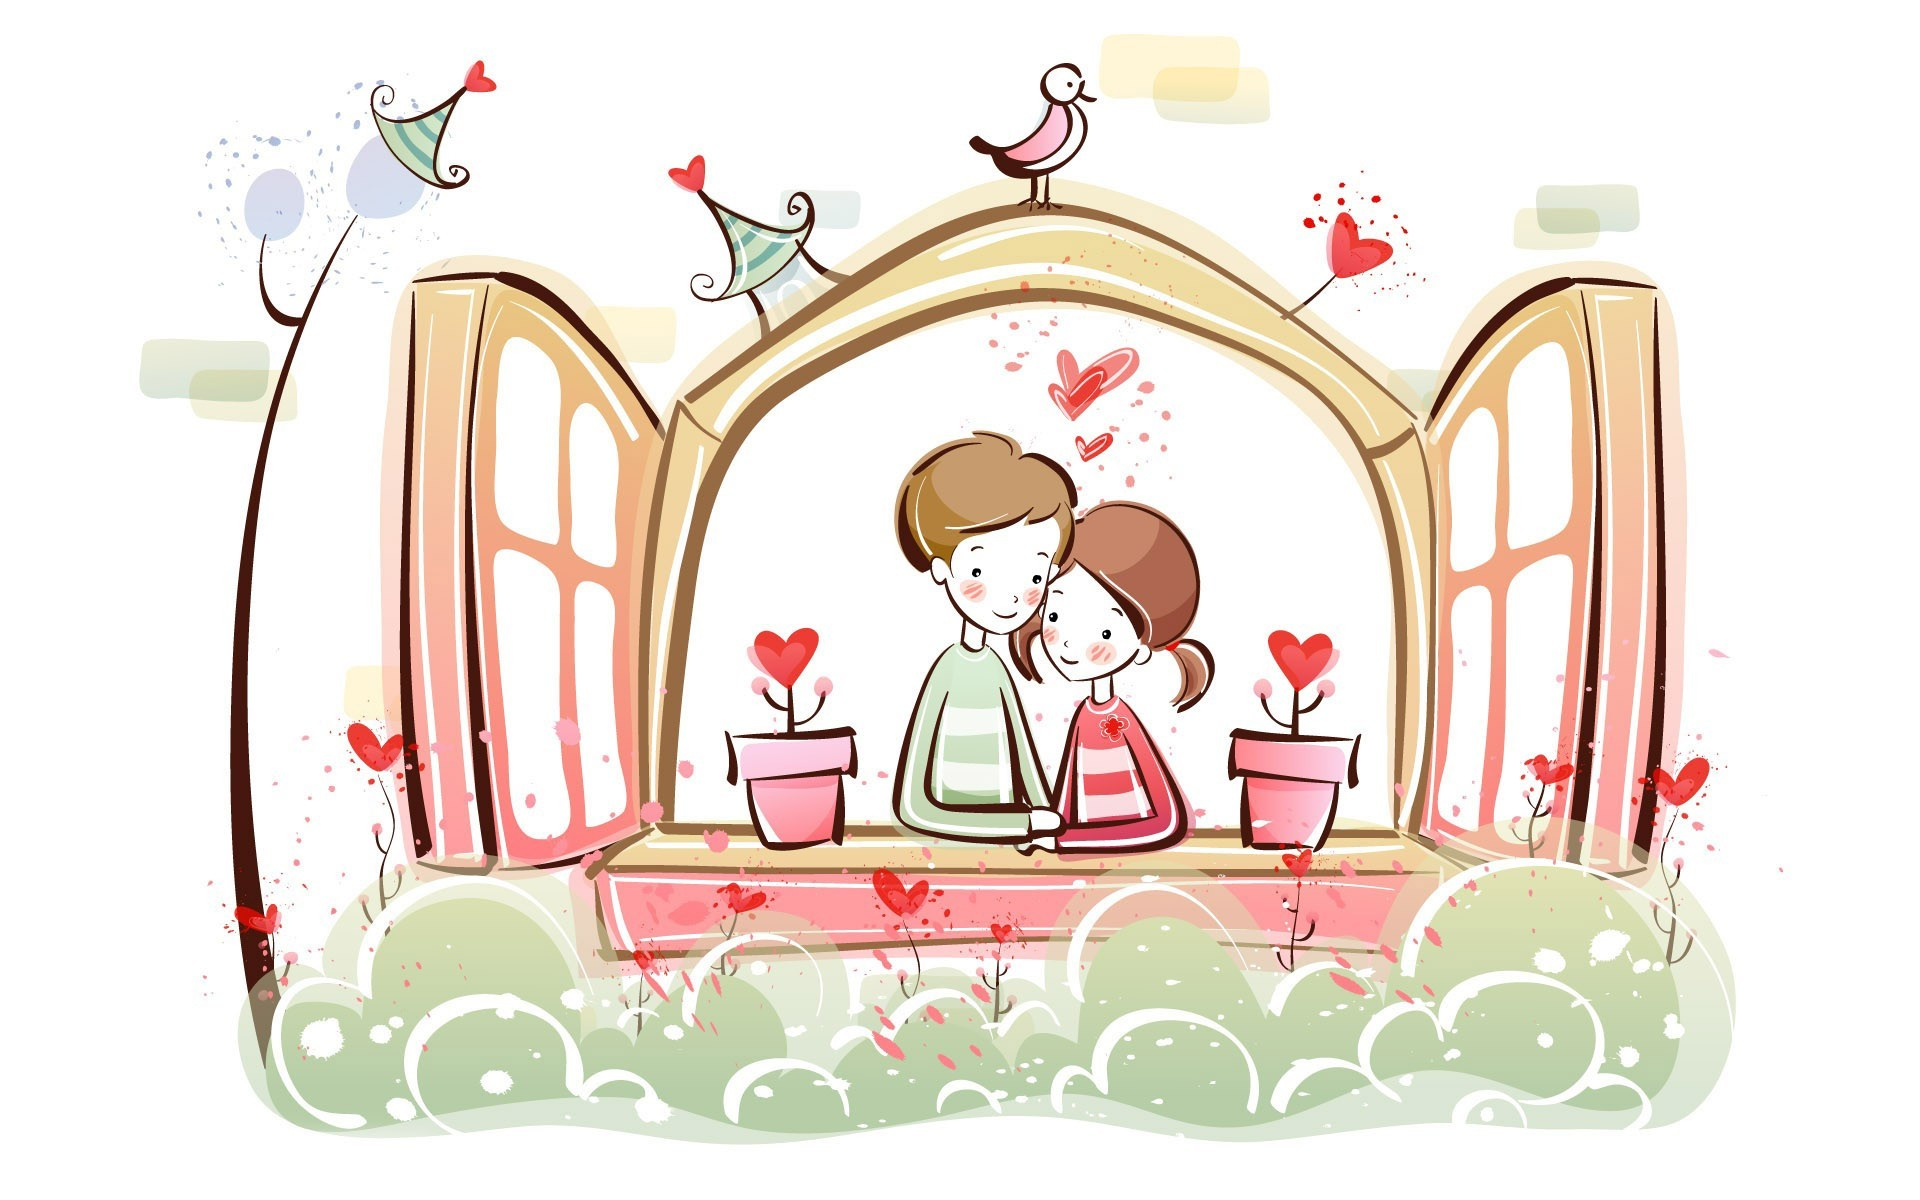 Latest cartoon Love Wallpaper : cartoon Love Wallpaper - Wallpaper, High Definition, High Quality, Widescreen